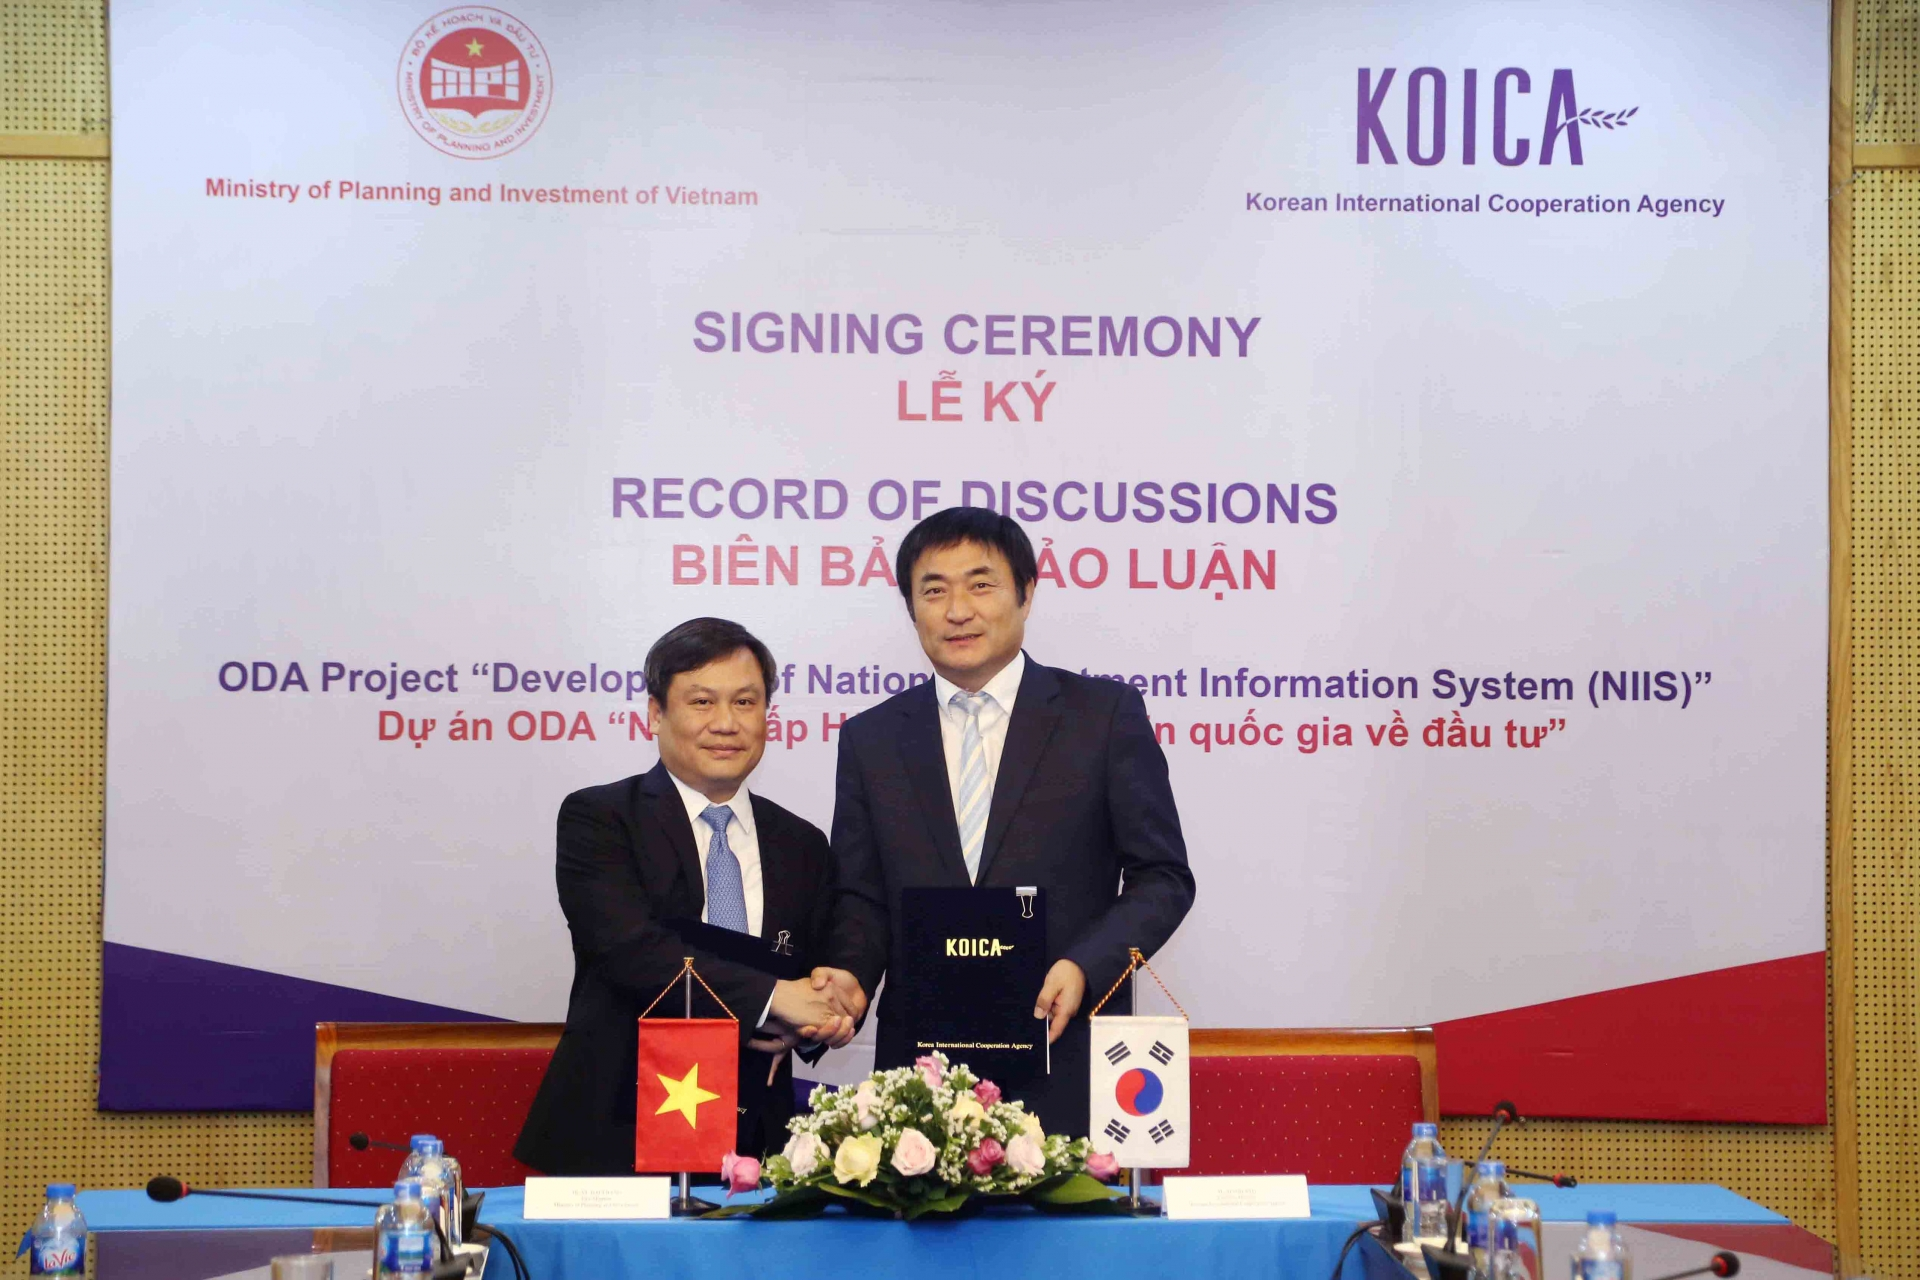 South Korea funds developing national investment information system